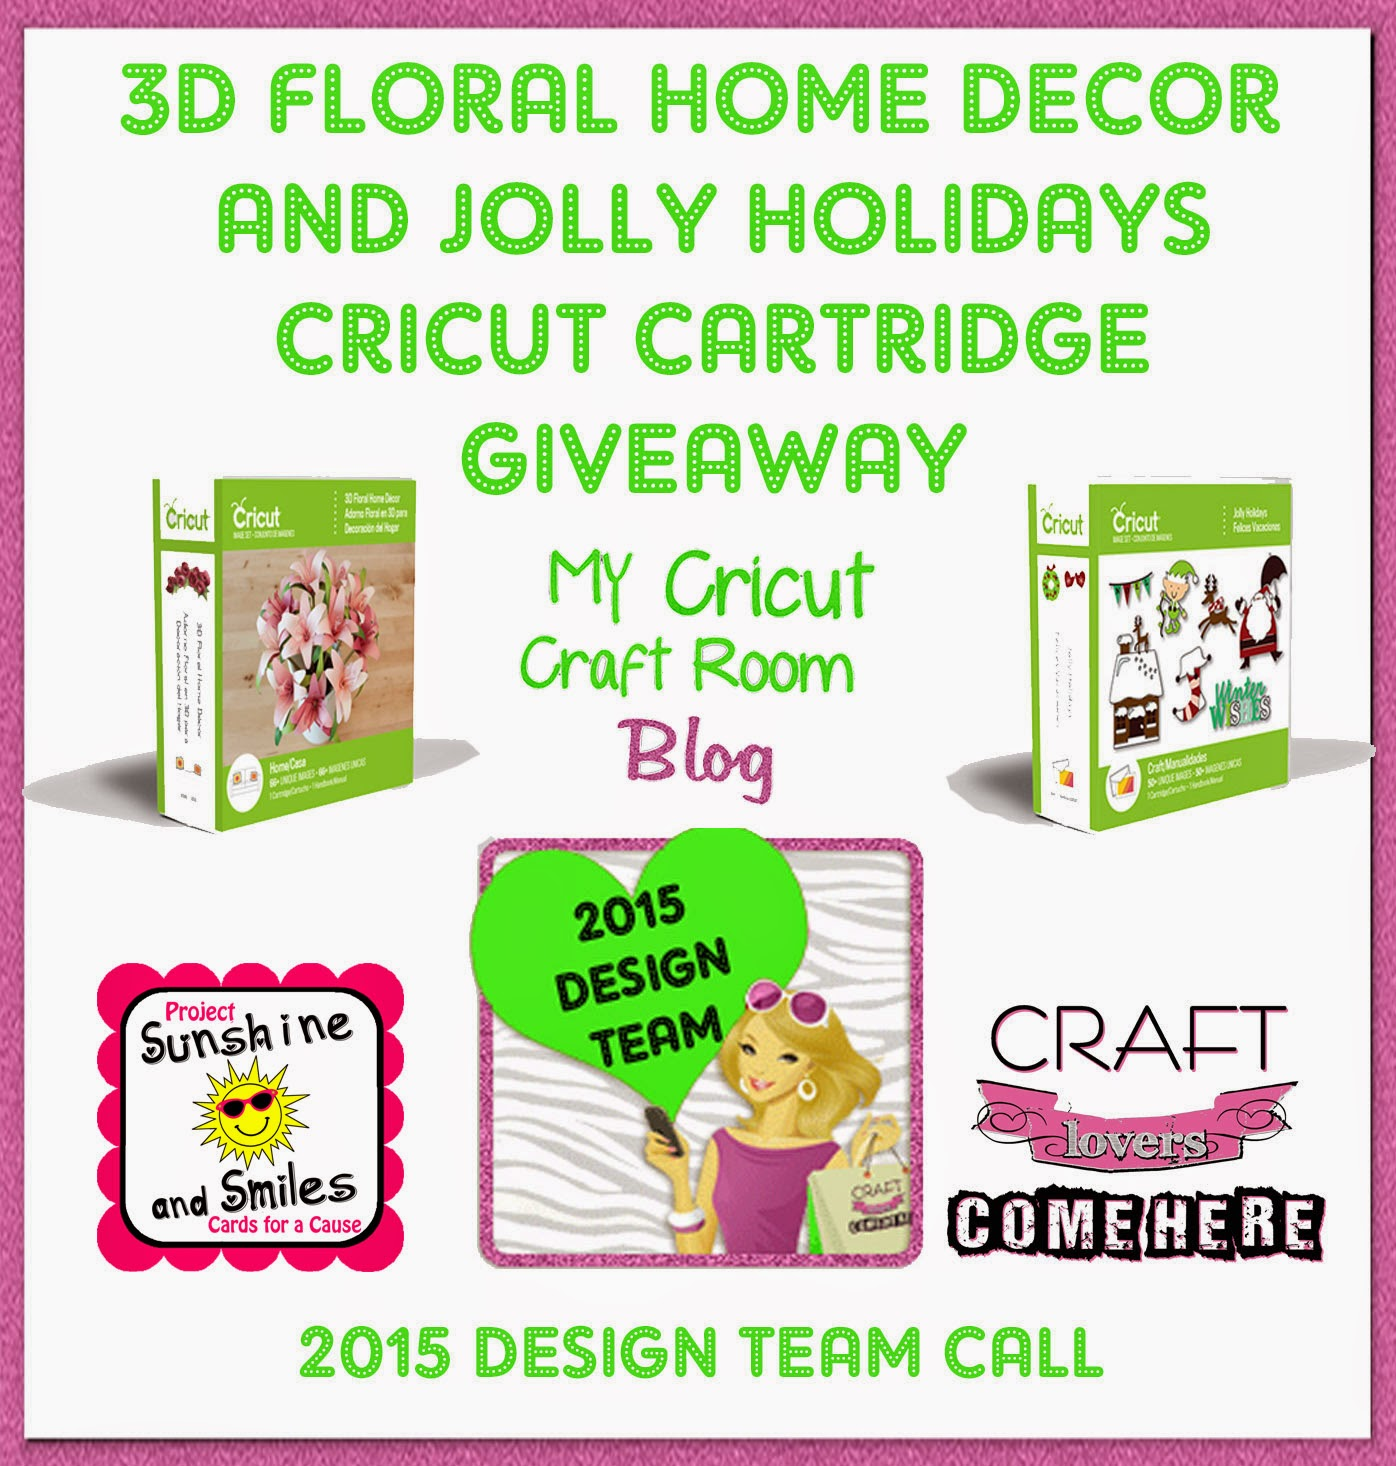 http://www.mycricutcraftroom.blogspot.com/2015/04/cricut-cartridge-giveaway-and-design.html